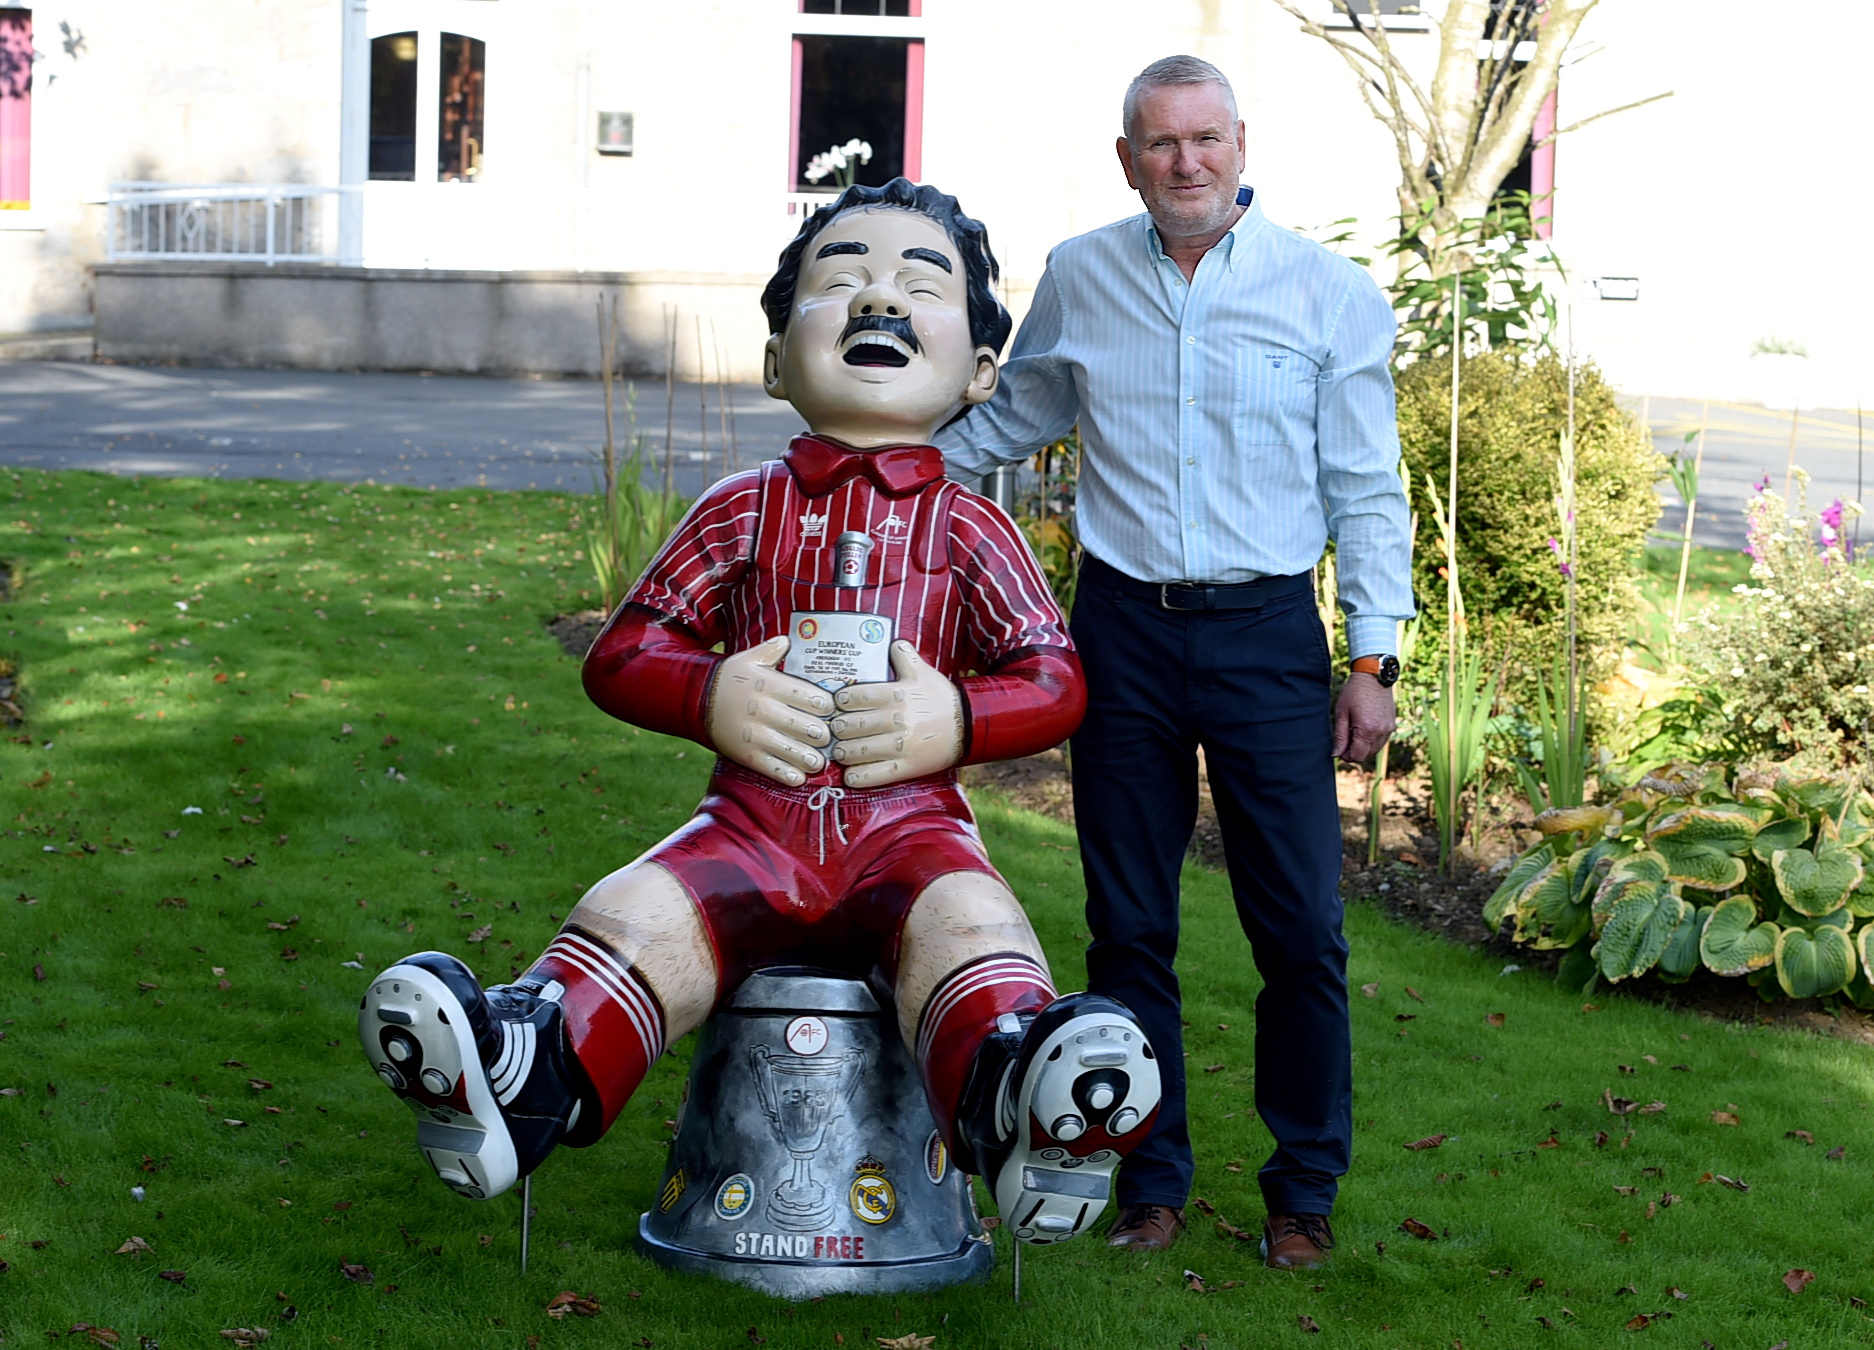 Drew Crawford of the Pinehurst Lodge Hotel with the Oor Wullie Willie Miller statue. Picture by Jim Irvine